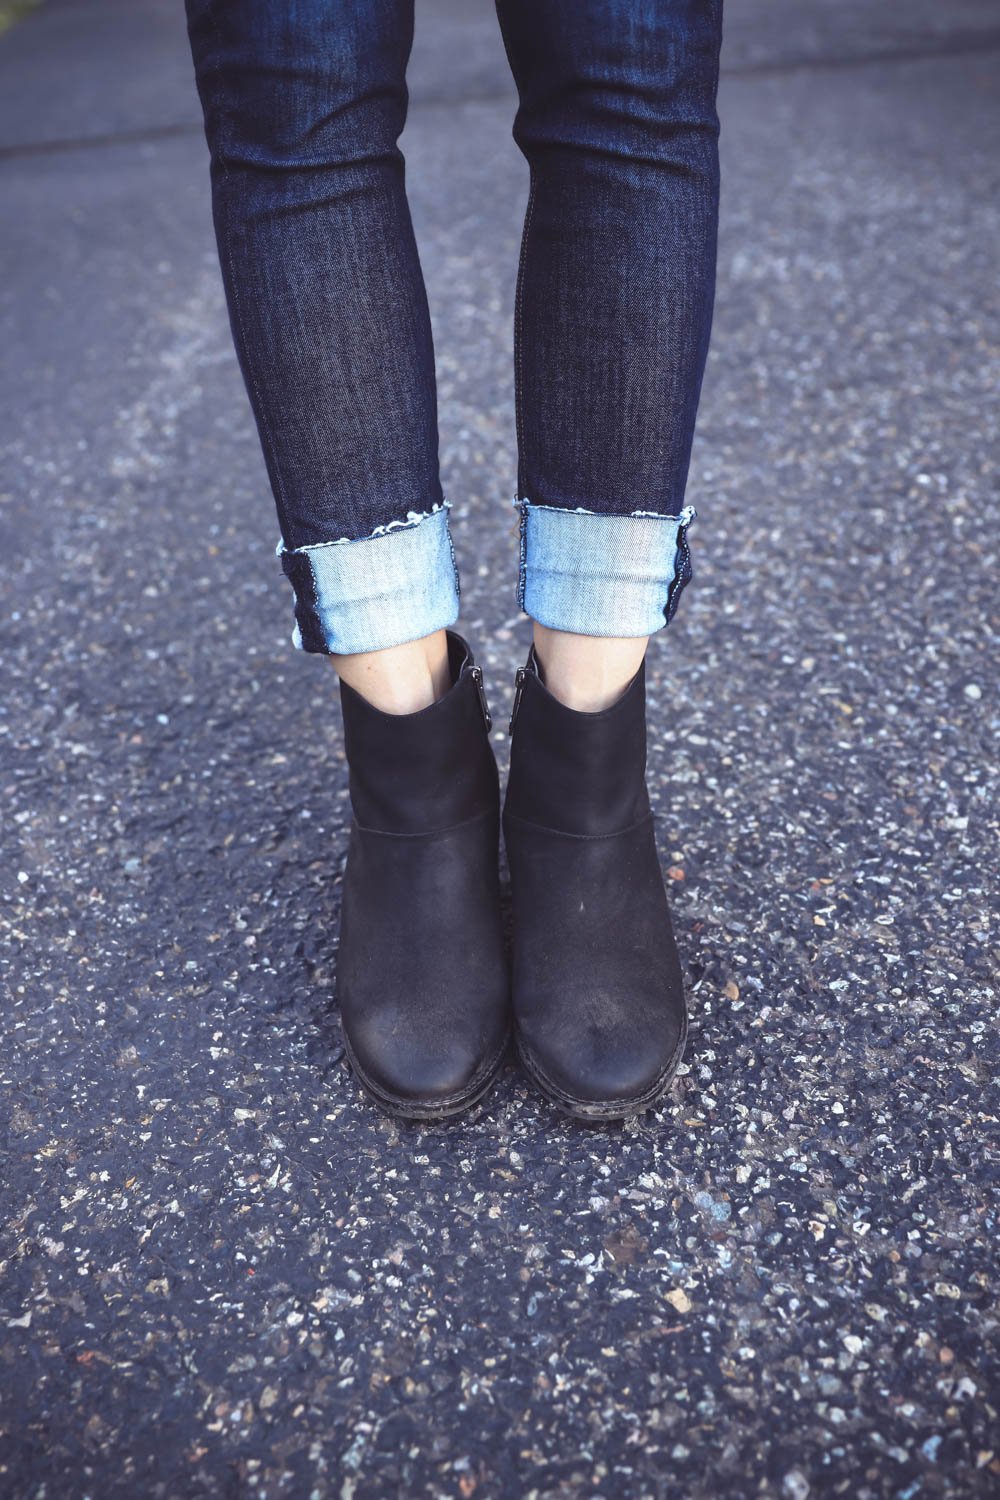 Ankle Boots, How to wear skinny jeans with ankle boots, try cropped jeans, by fashion blogger over 40, Erin busbee, Telluride, Colorado